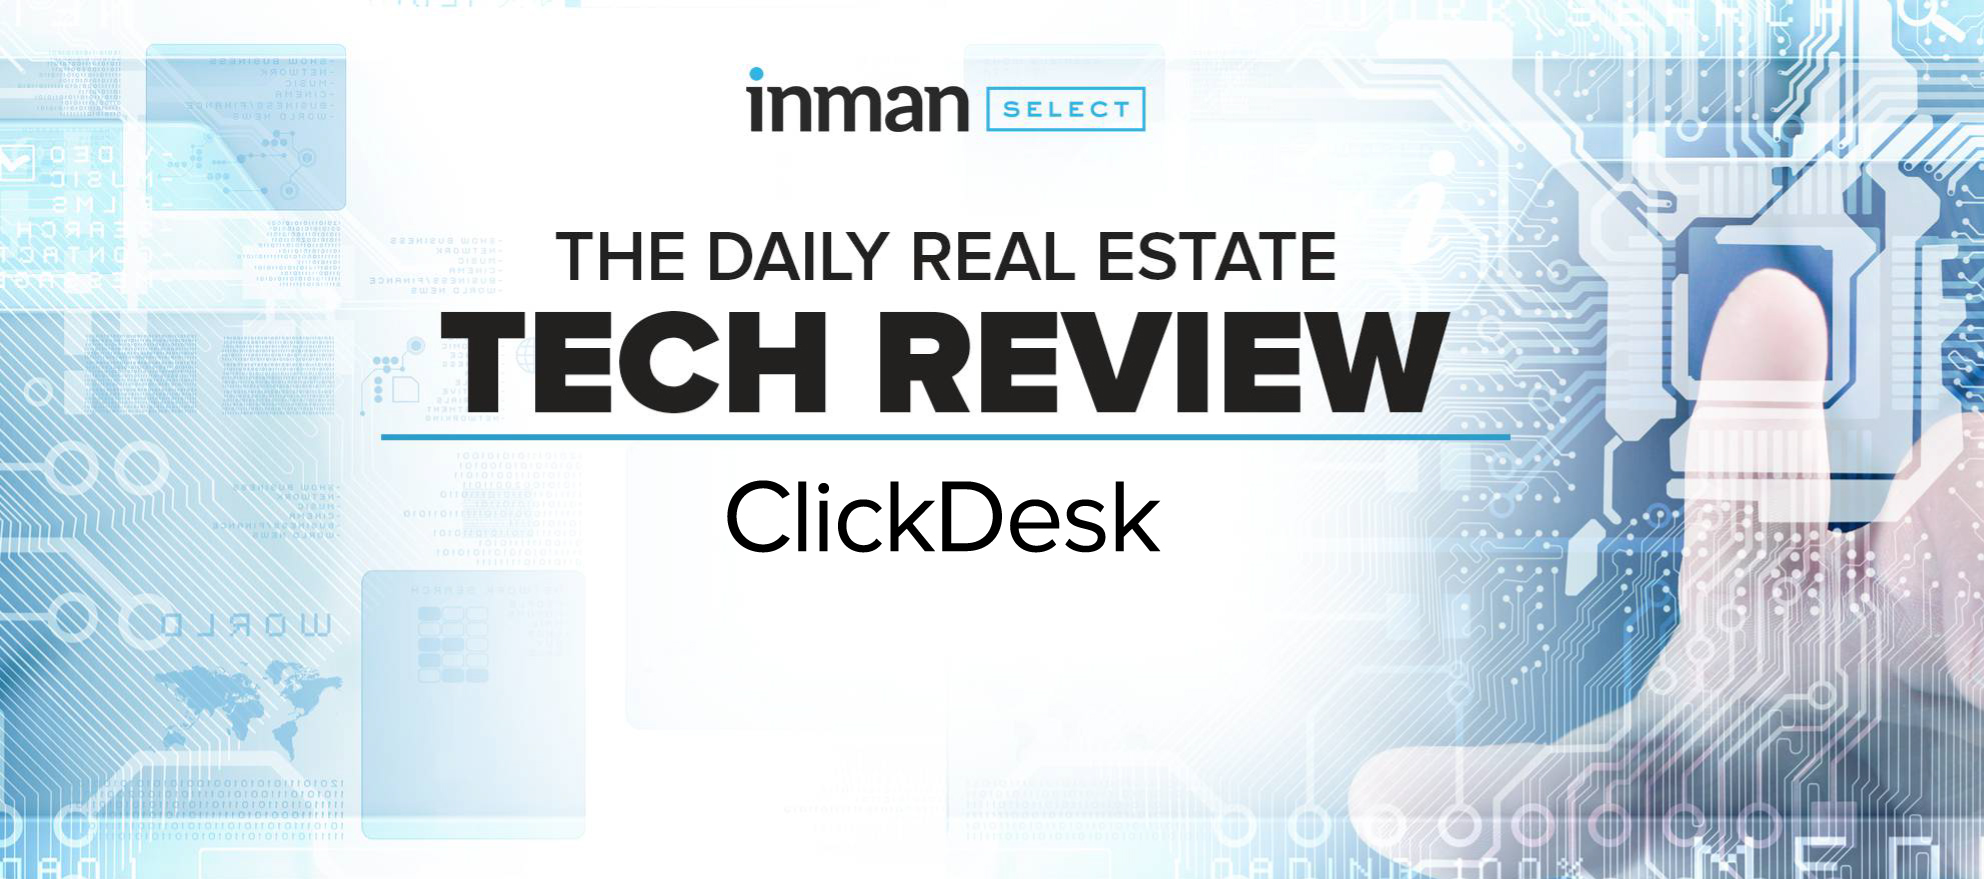 Customer messaging tools like ClickDesk can quickly increase the value of every website visitor